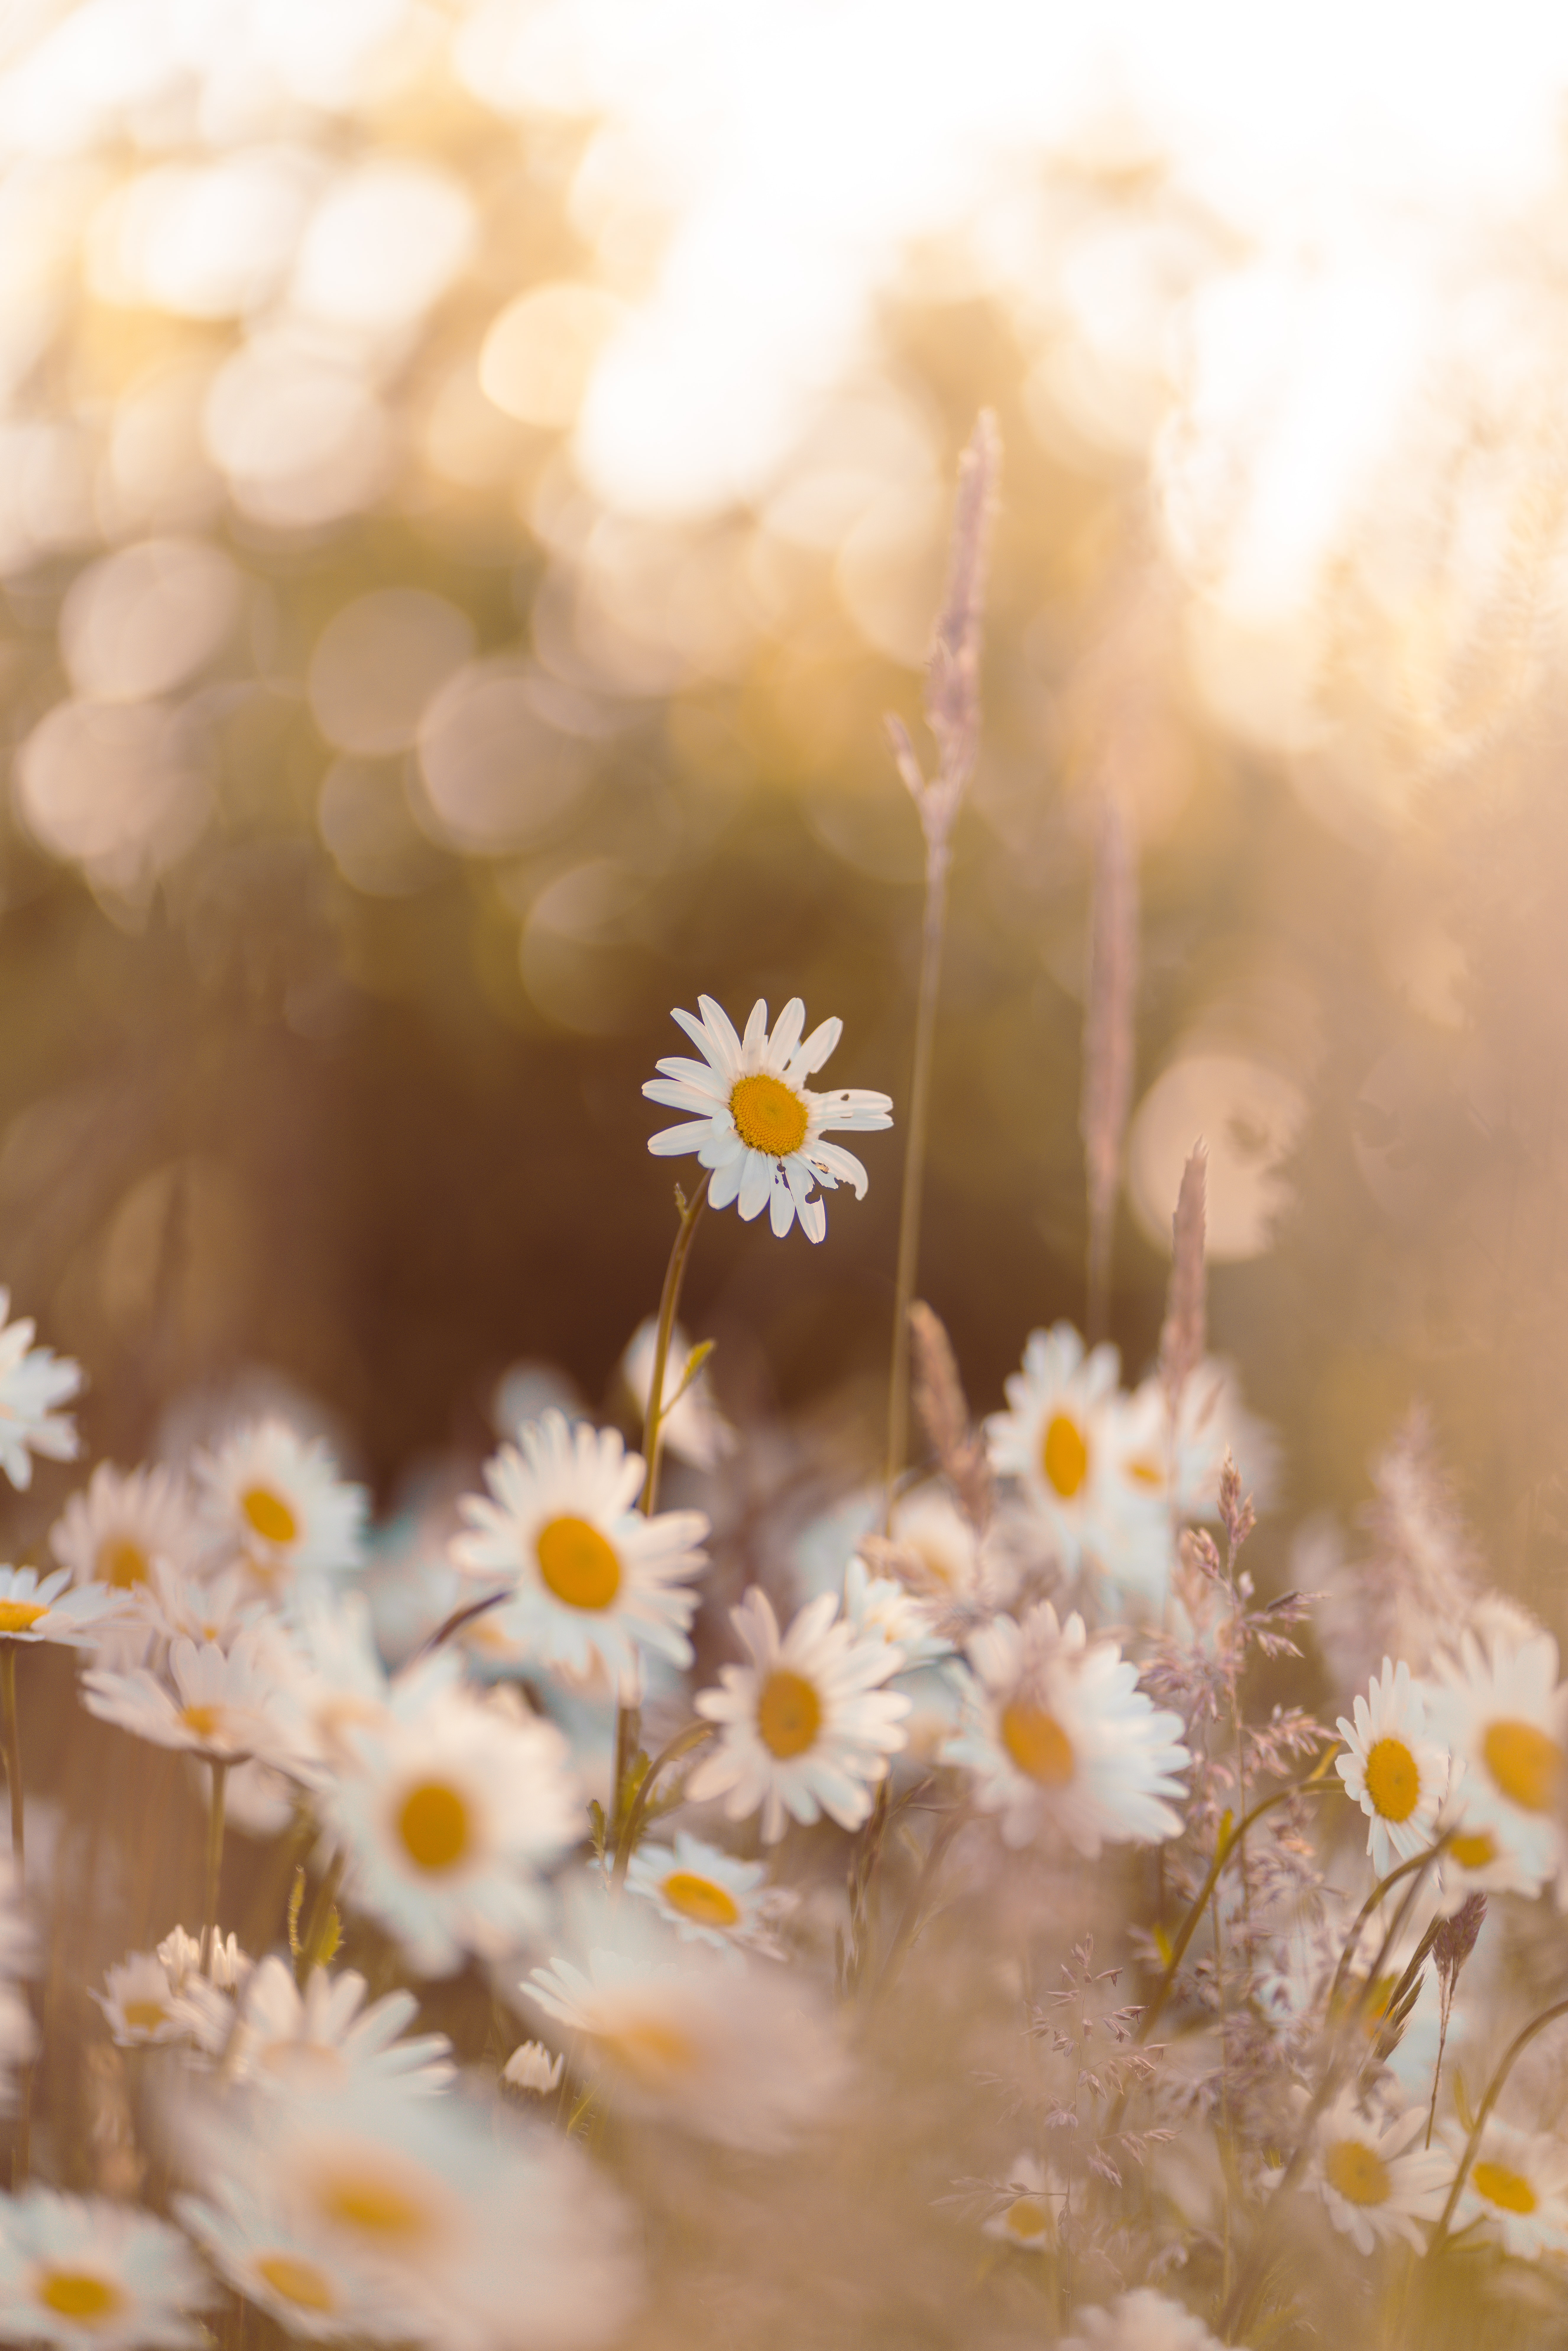 55995 download wallpaper Flowers, Chamomile, Camomile, Wildflowers, Petals, Focus screensavers and pictures for free